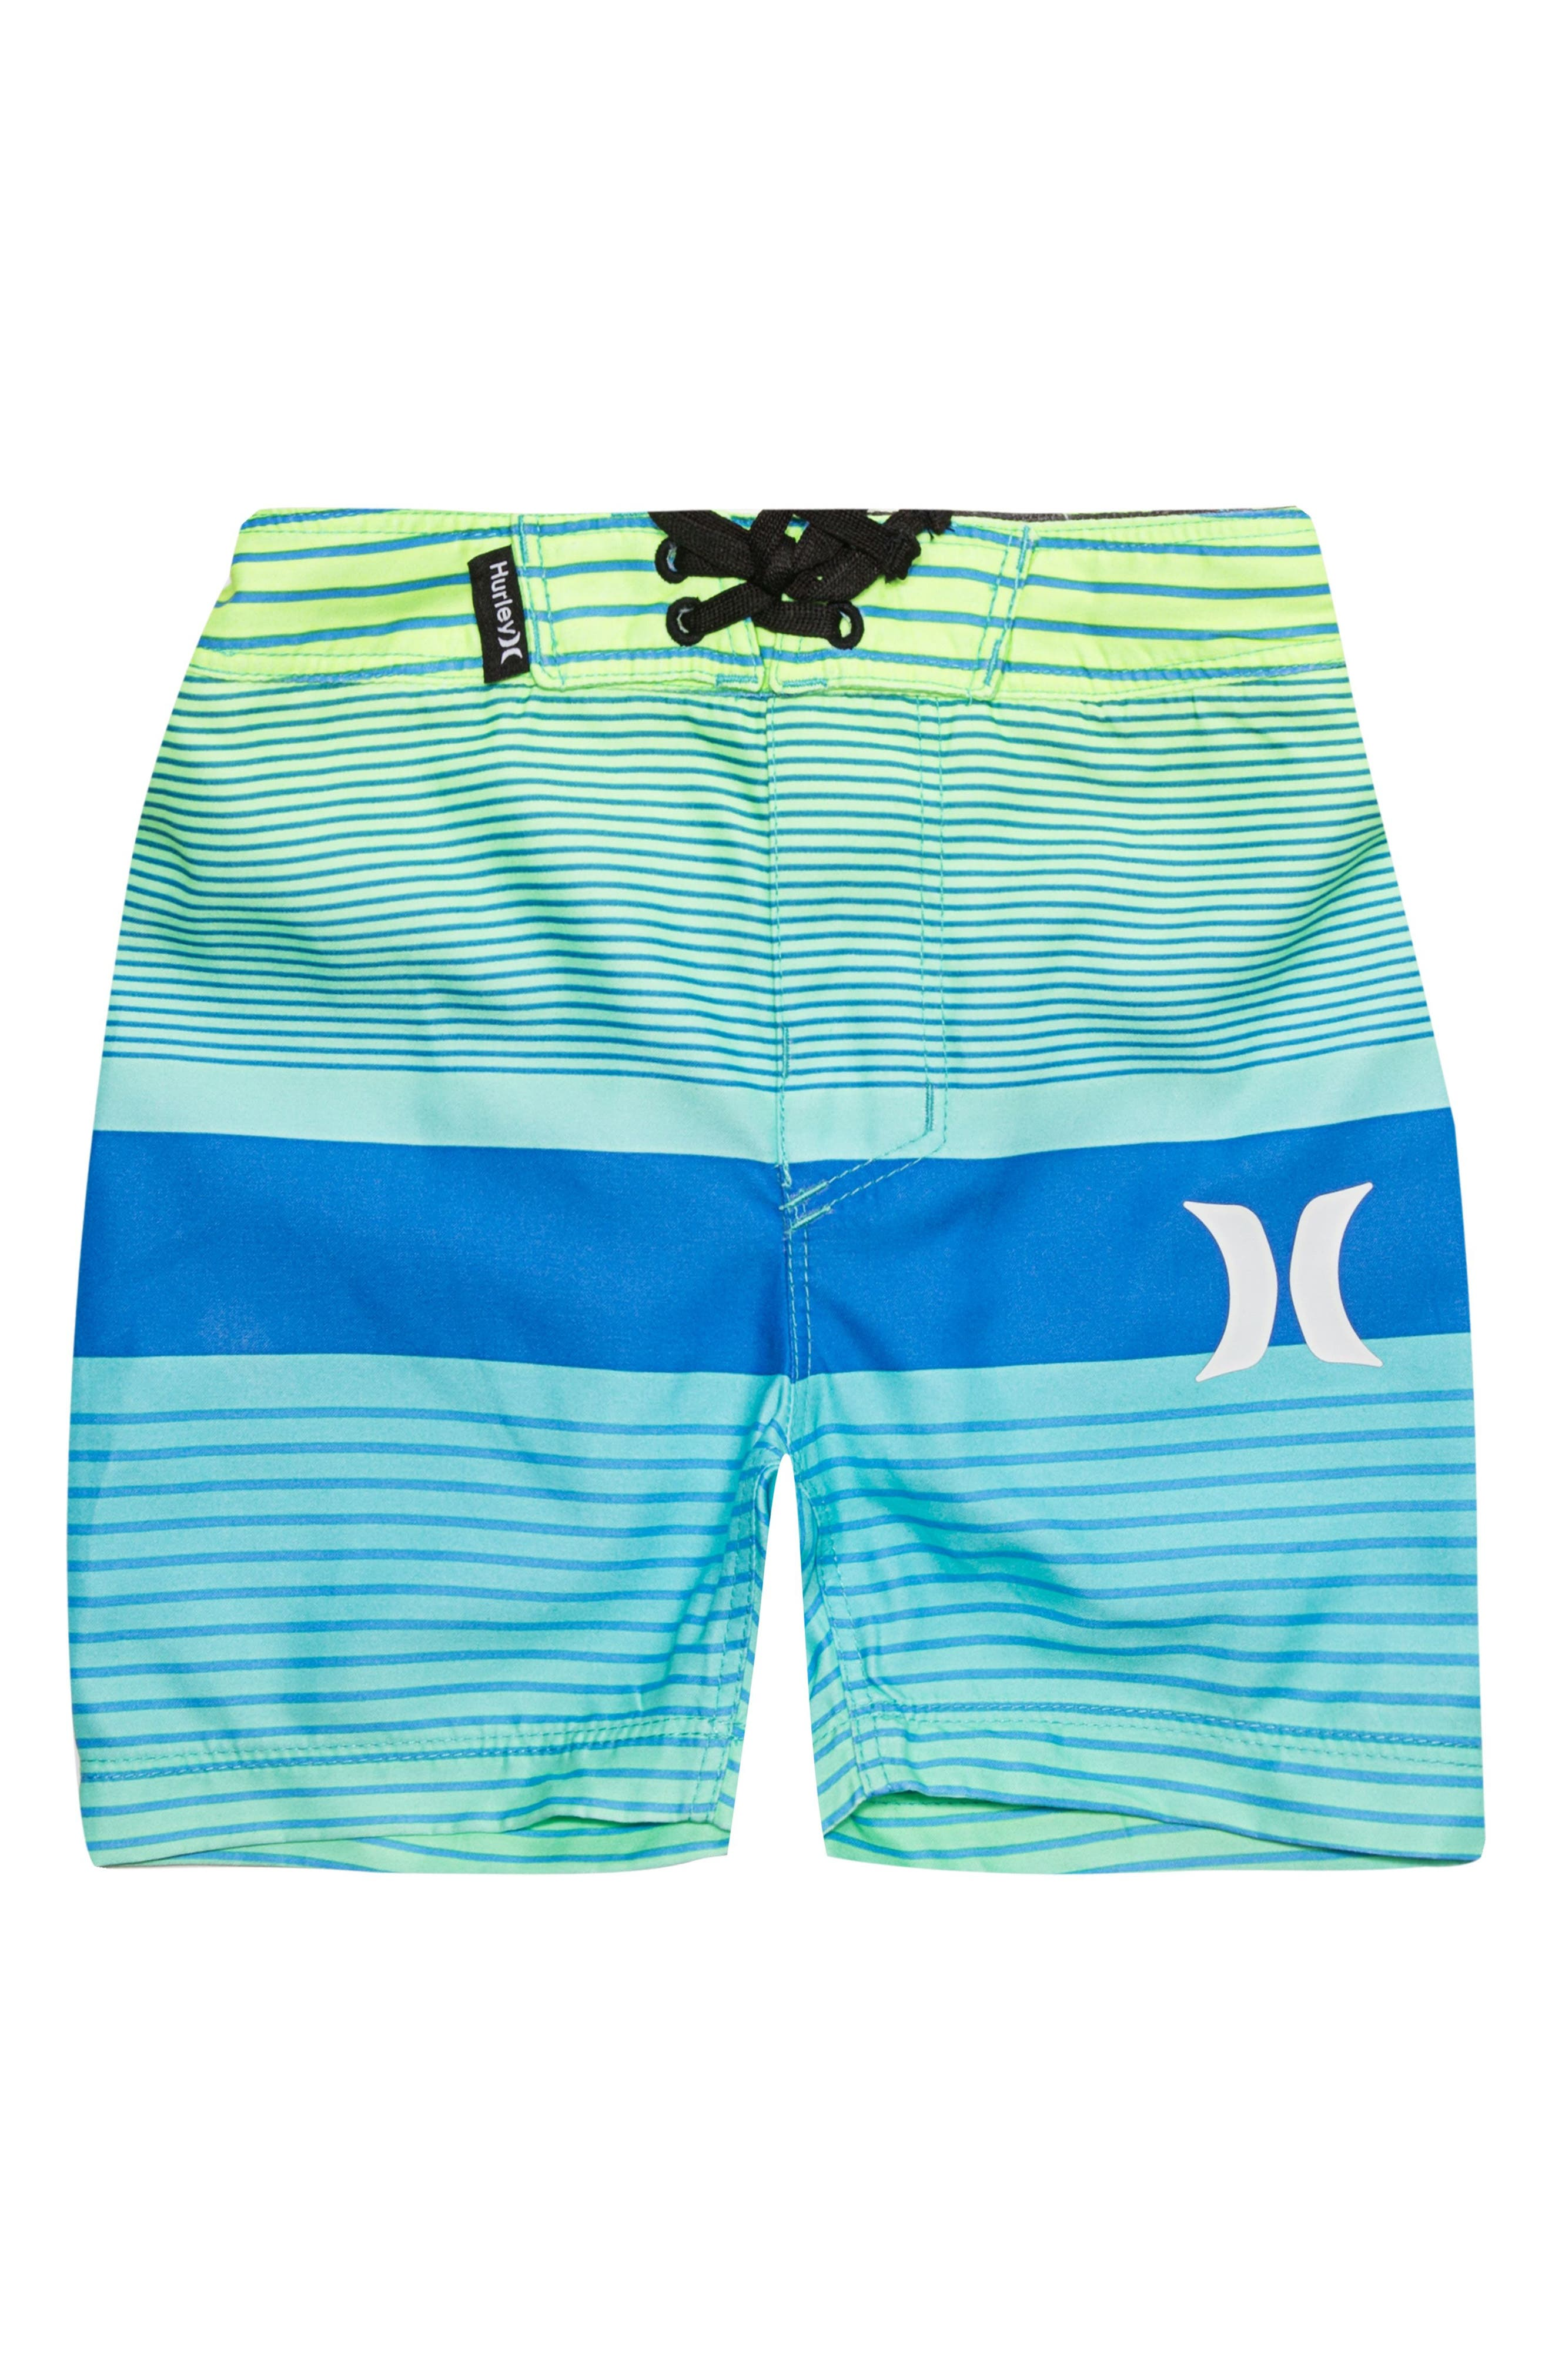 Line Up Board Shorts,                         Main,                         color, 361